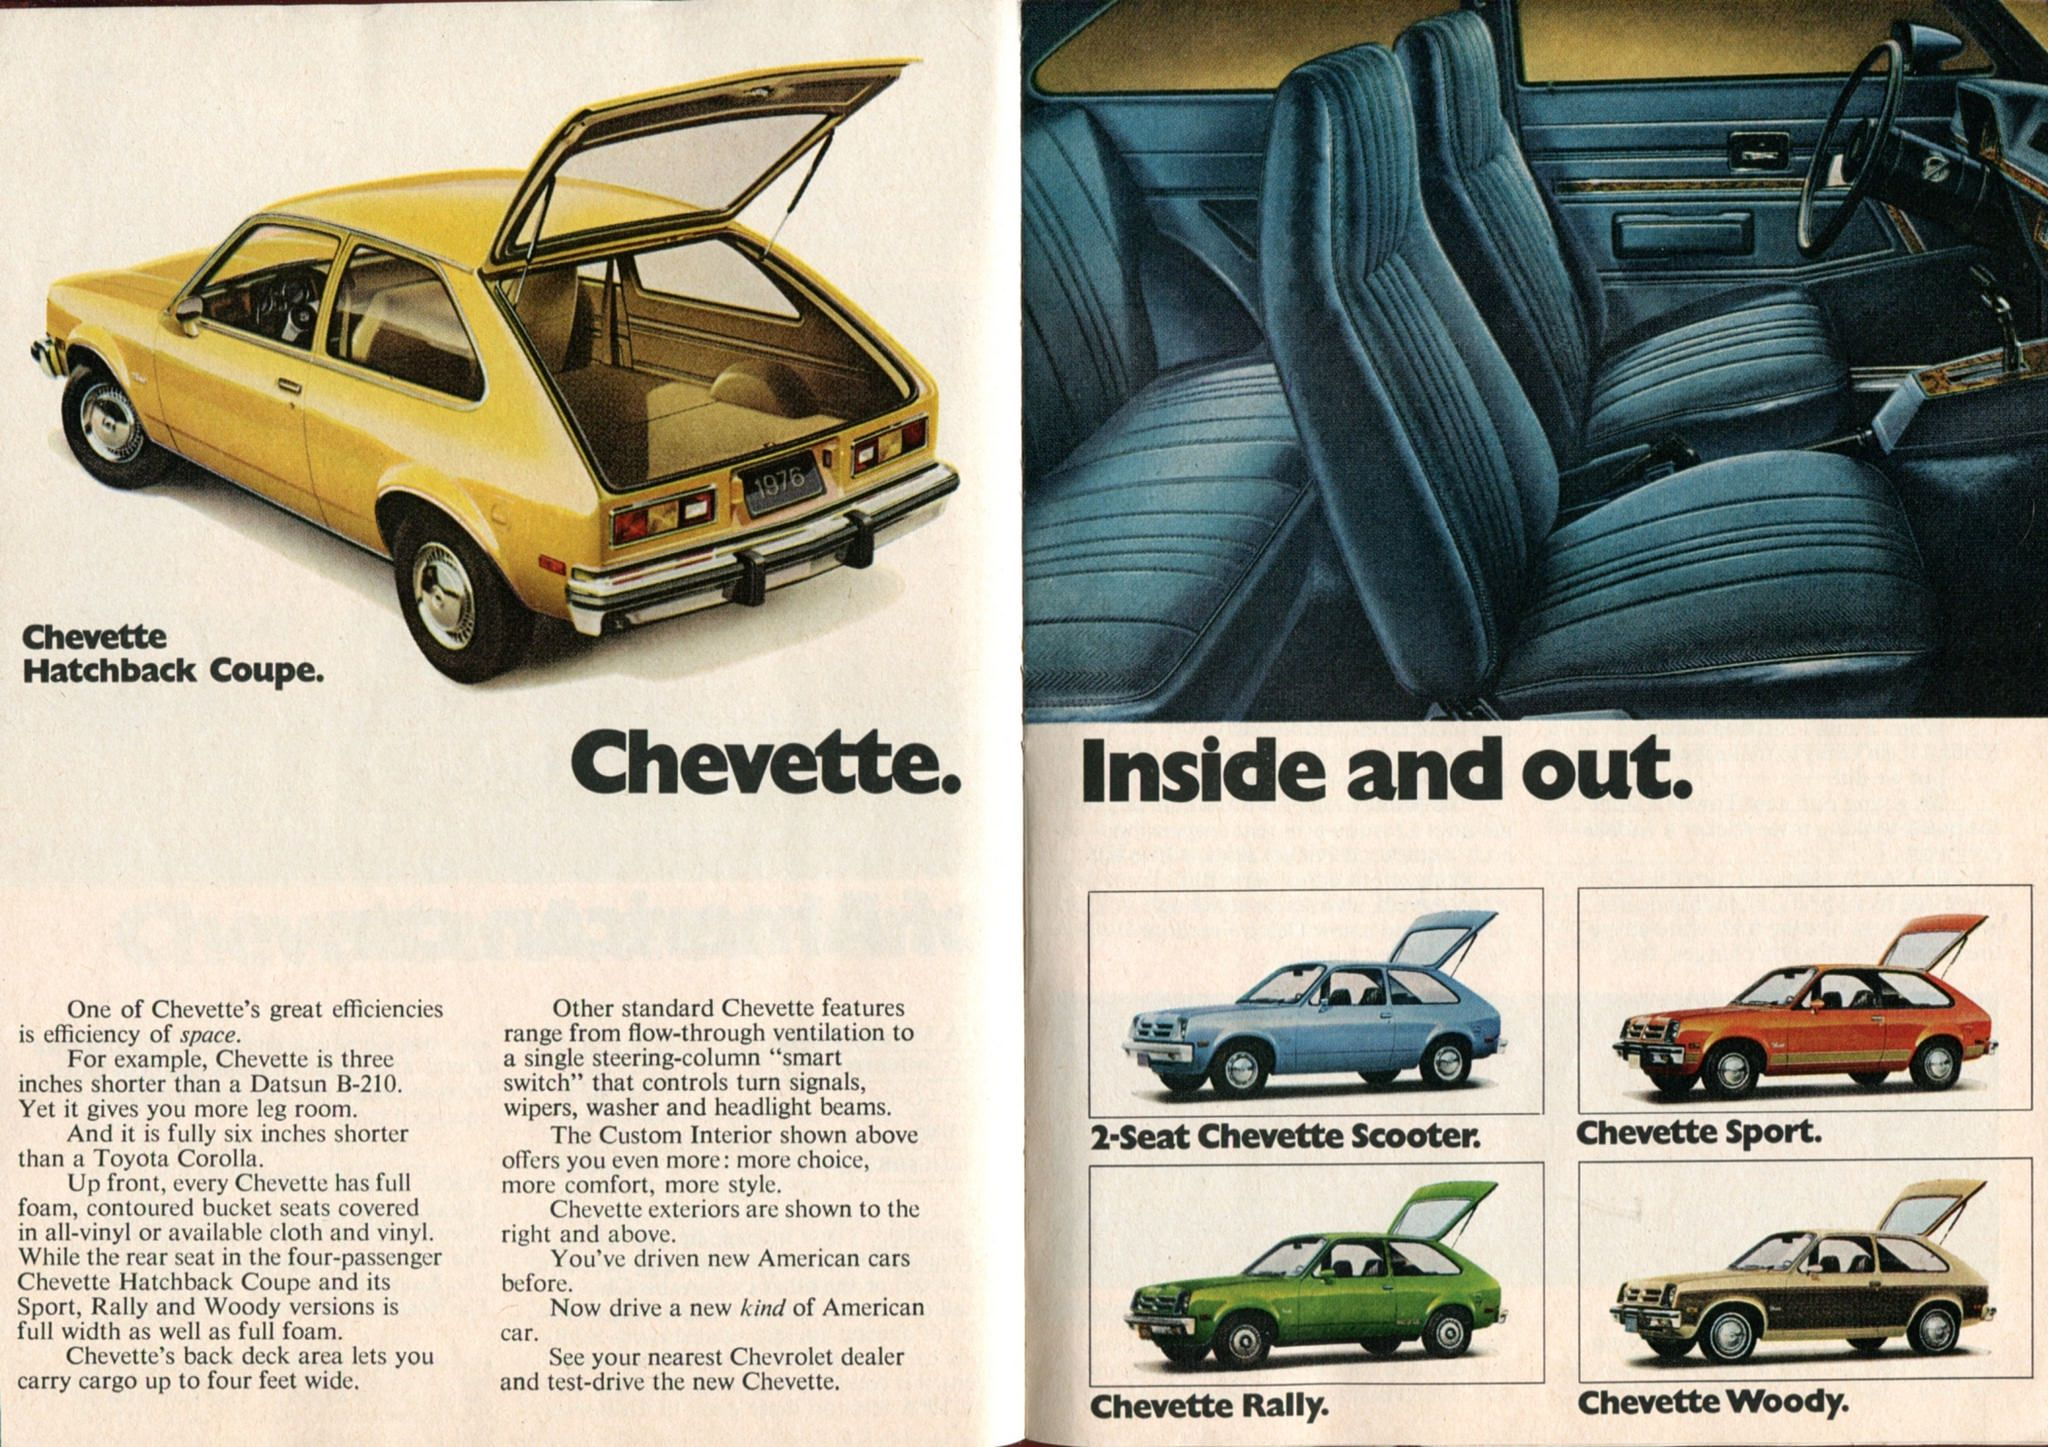 1976 Chevrolet Chevette Advertisement Readers Digest November 1975